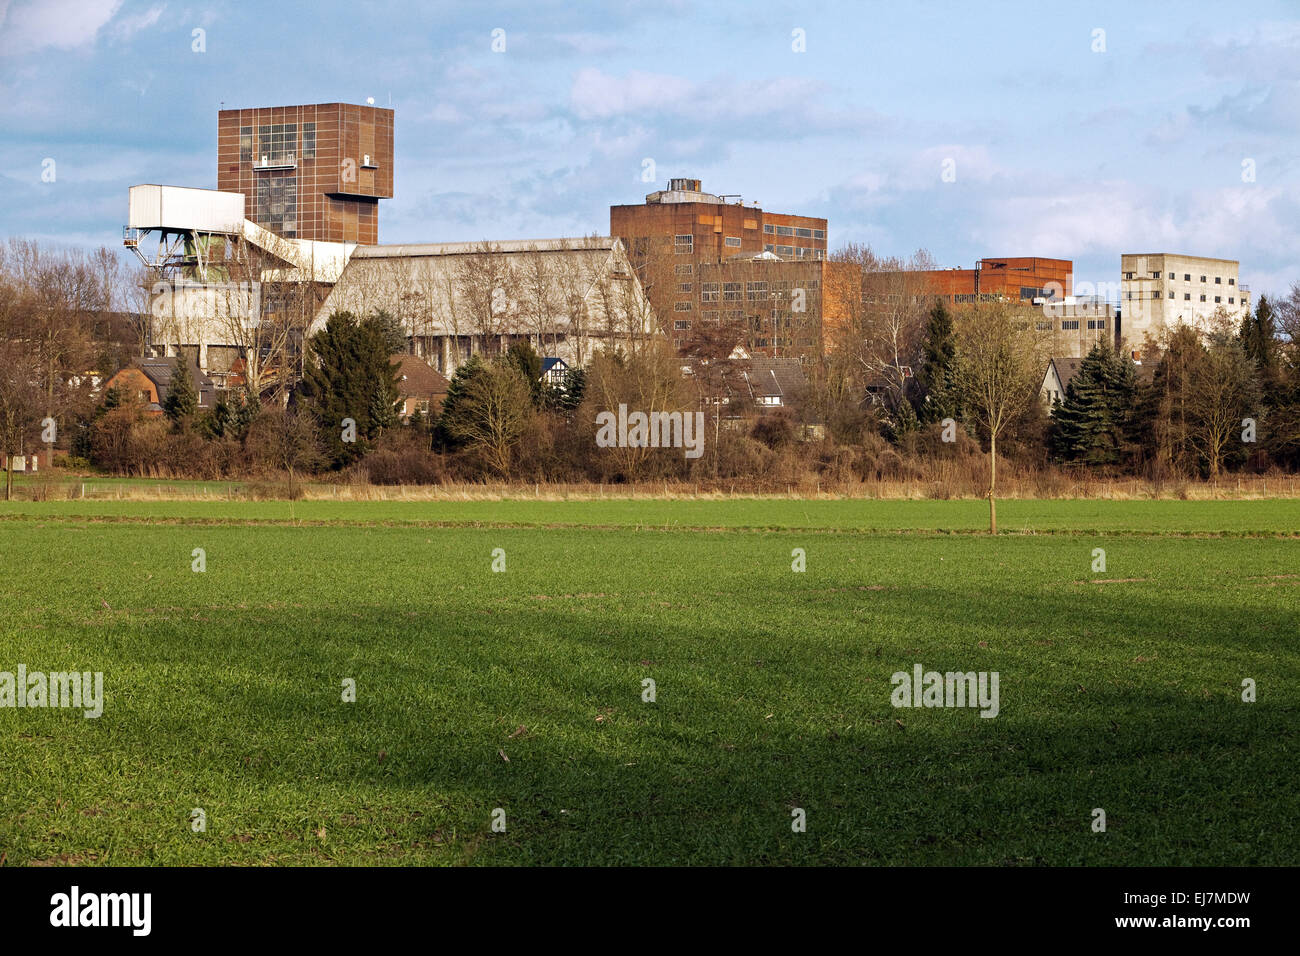 Ost colliery, Hamm, Germany - Stock Image